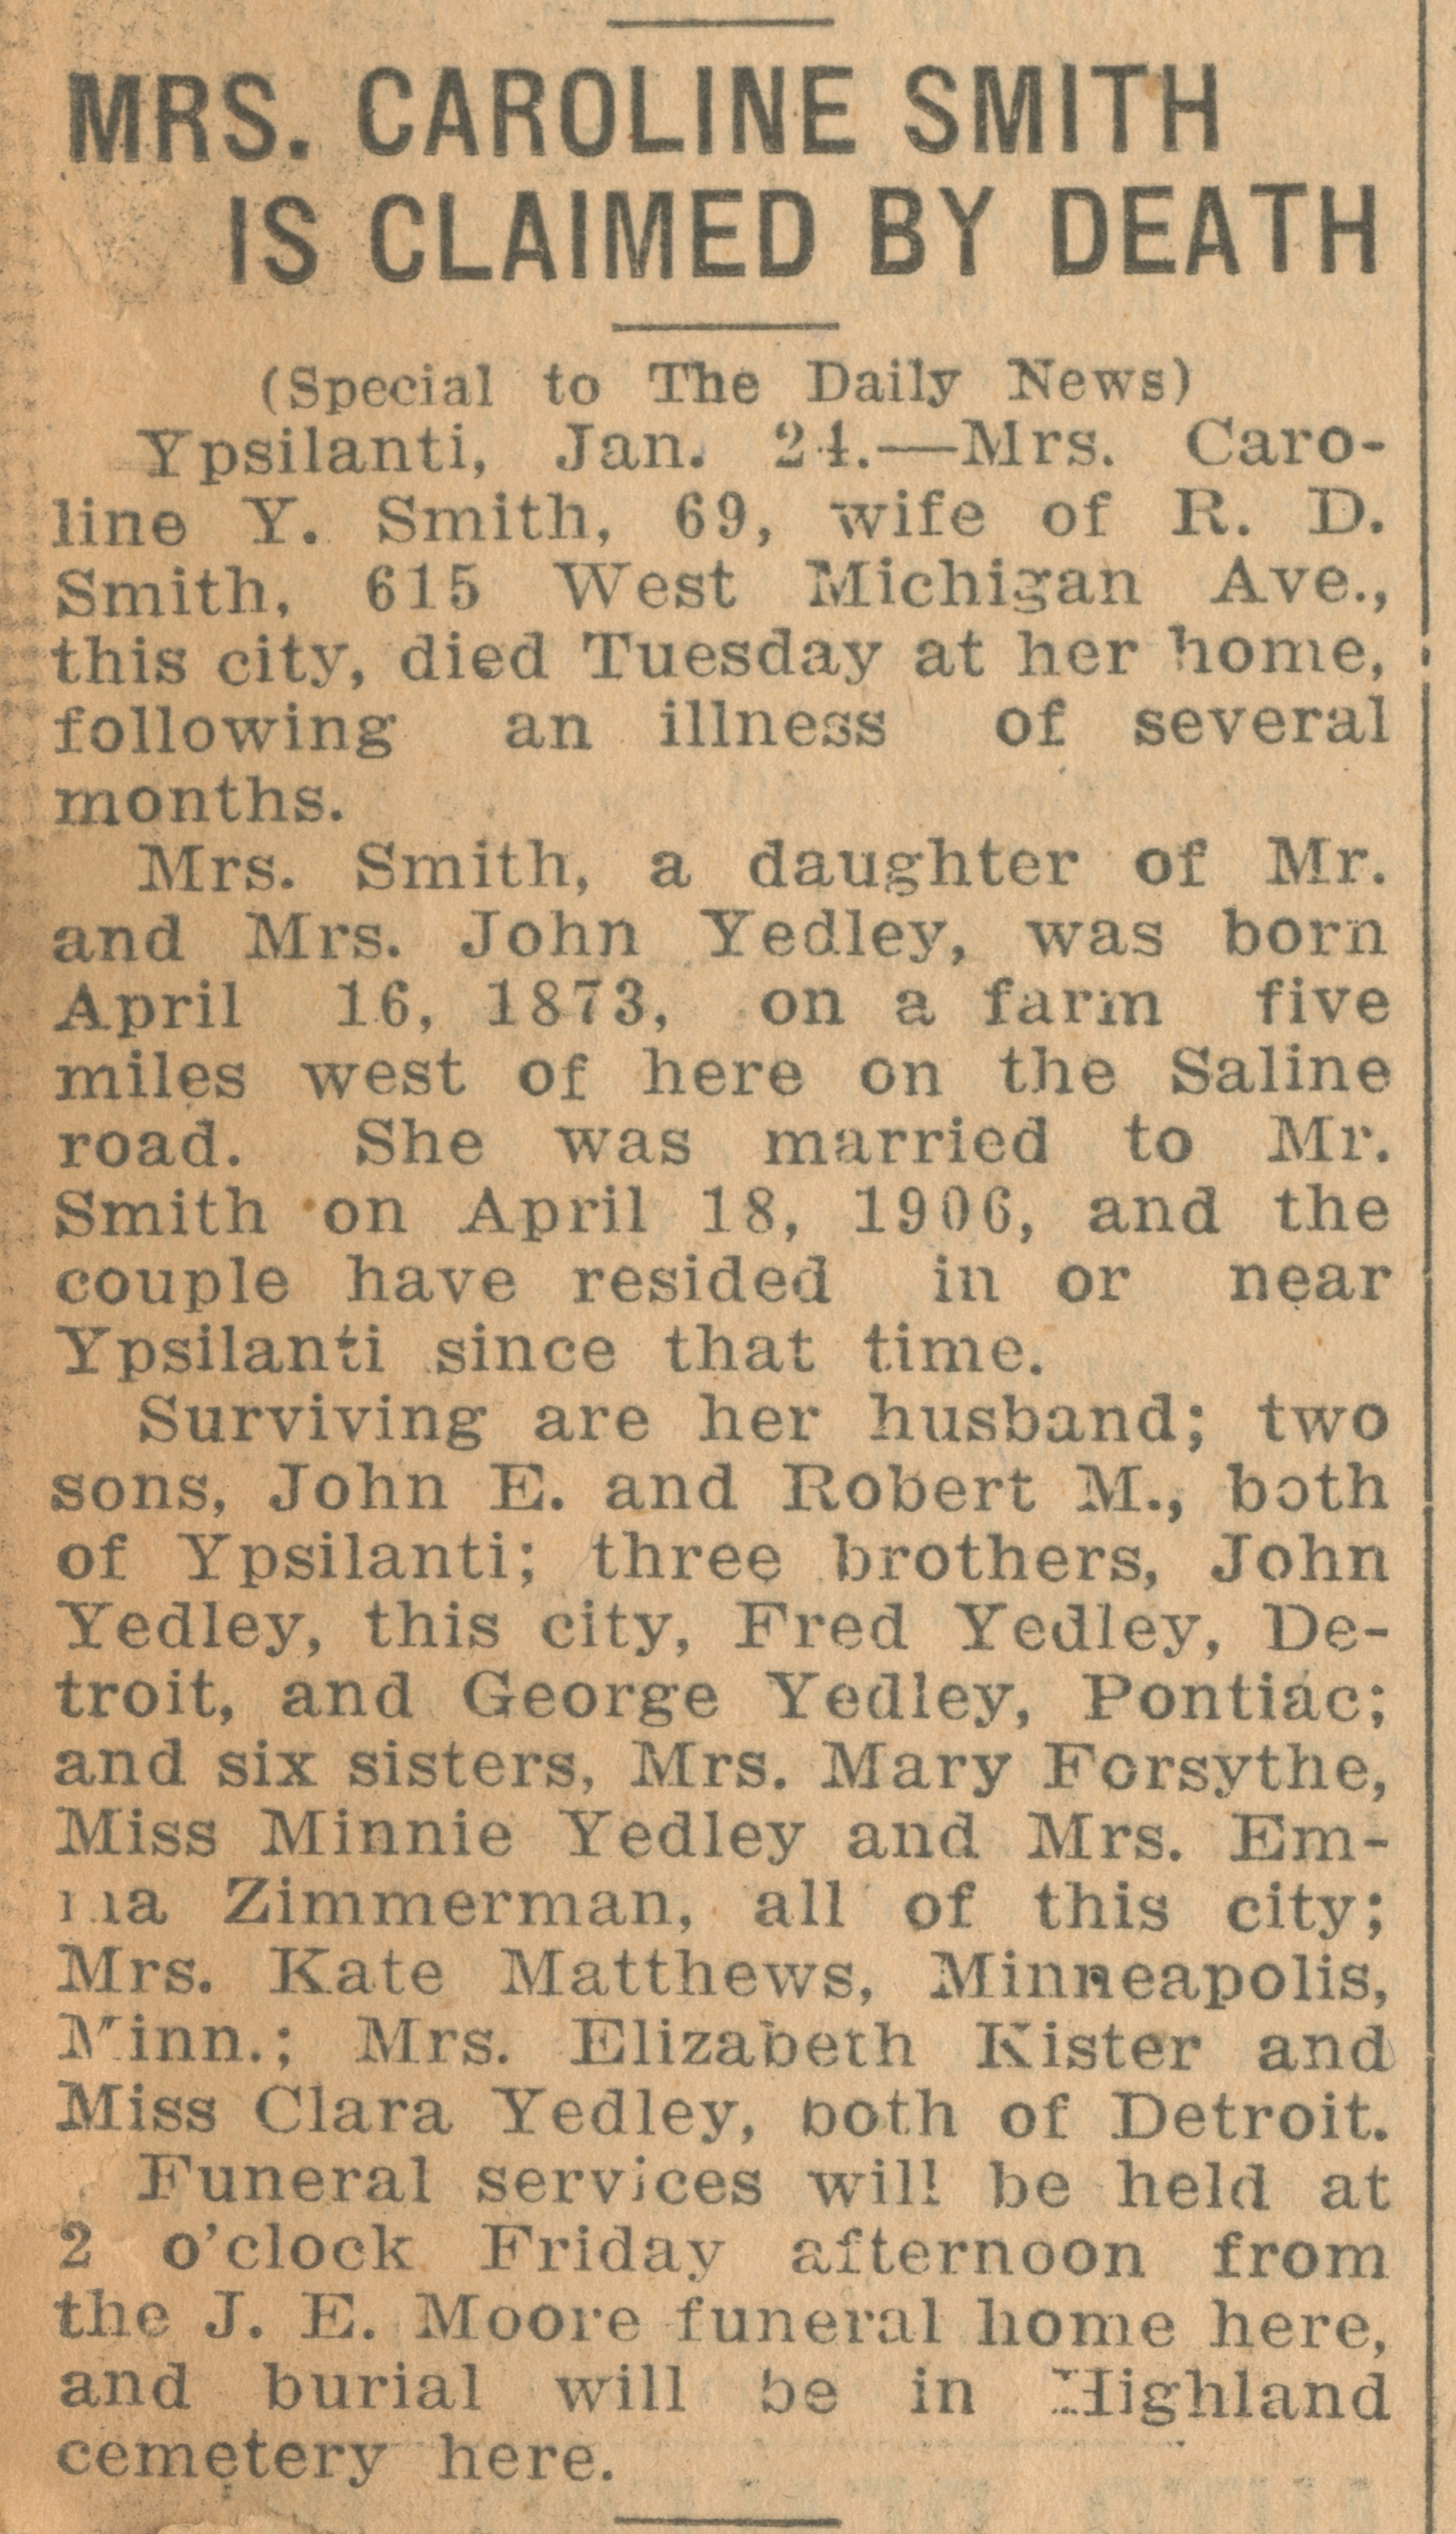 Mrs. Caroline Smith Is Claimed By Death image